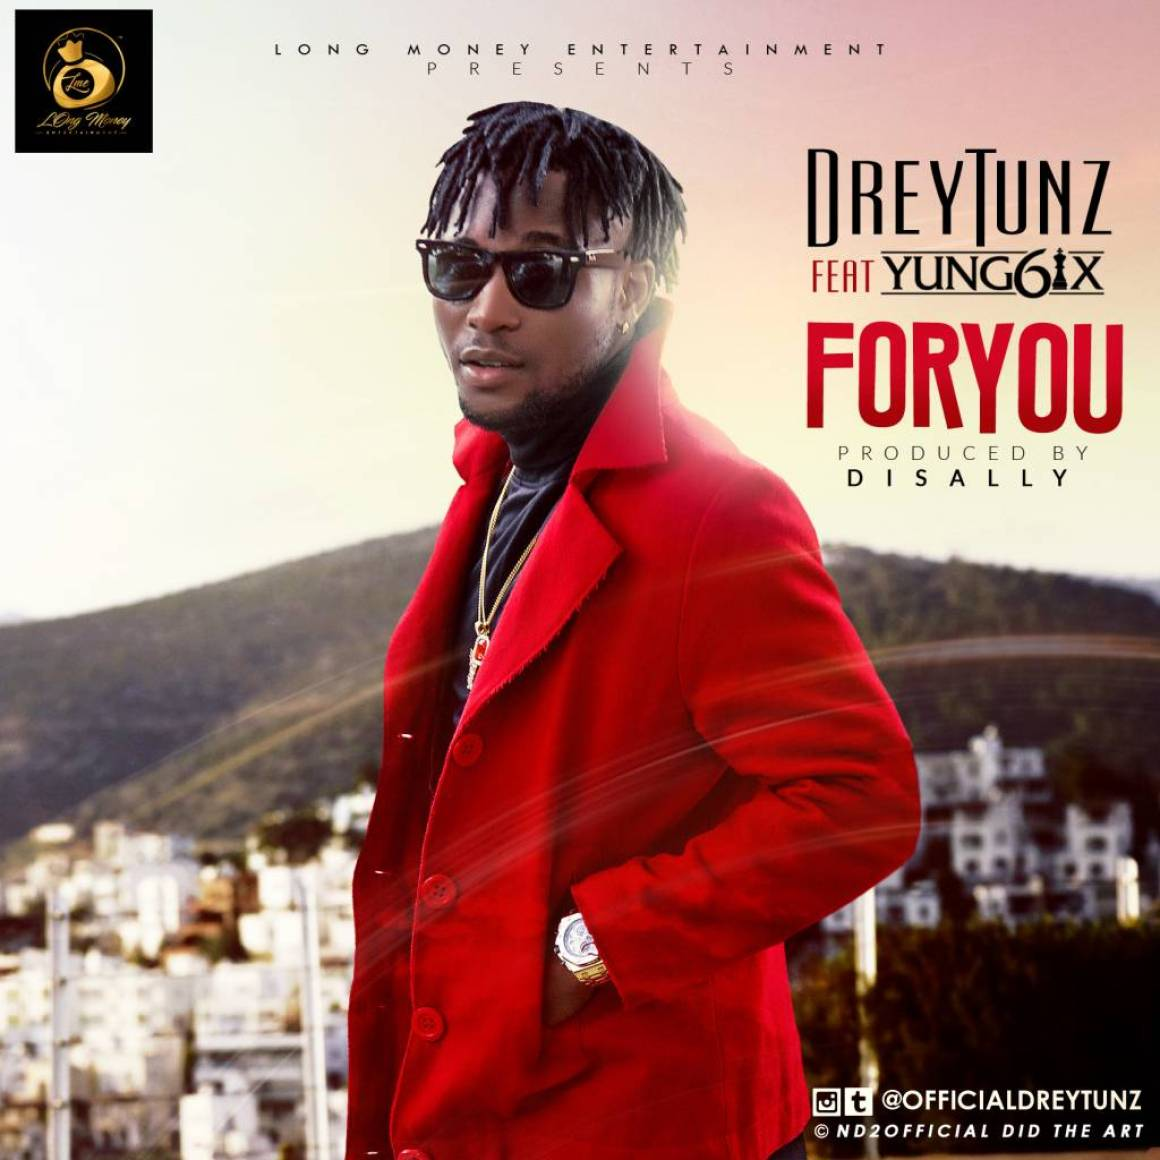 DreyTunz – For You ft. Yung6ix (Prod by Disally)